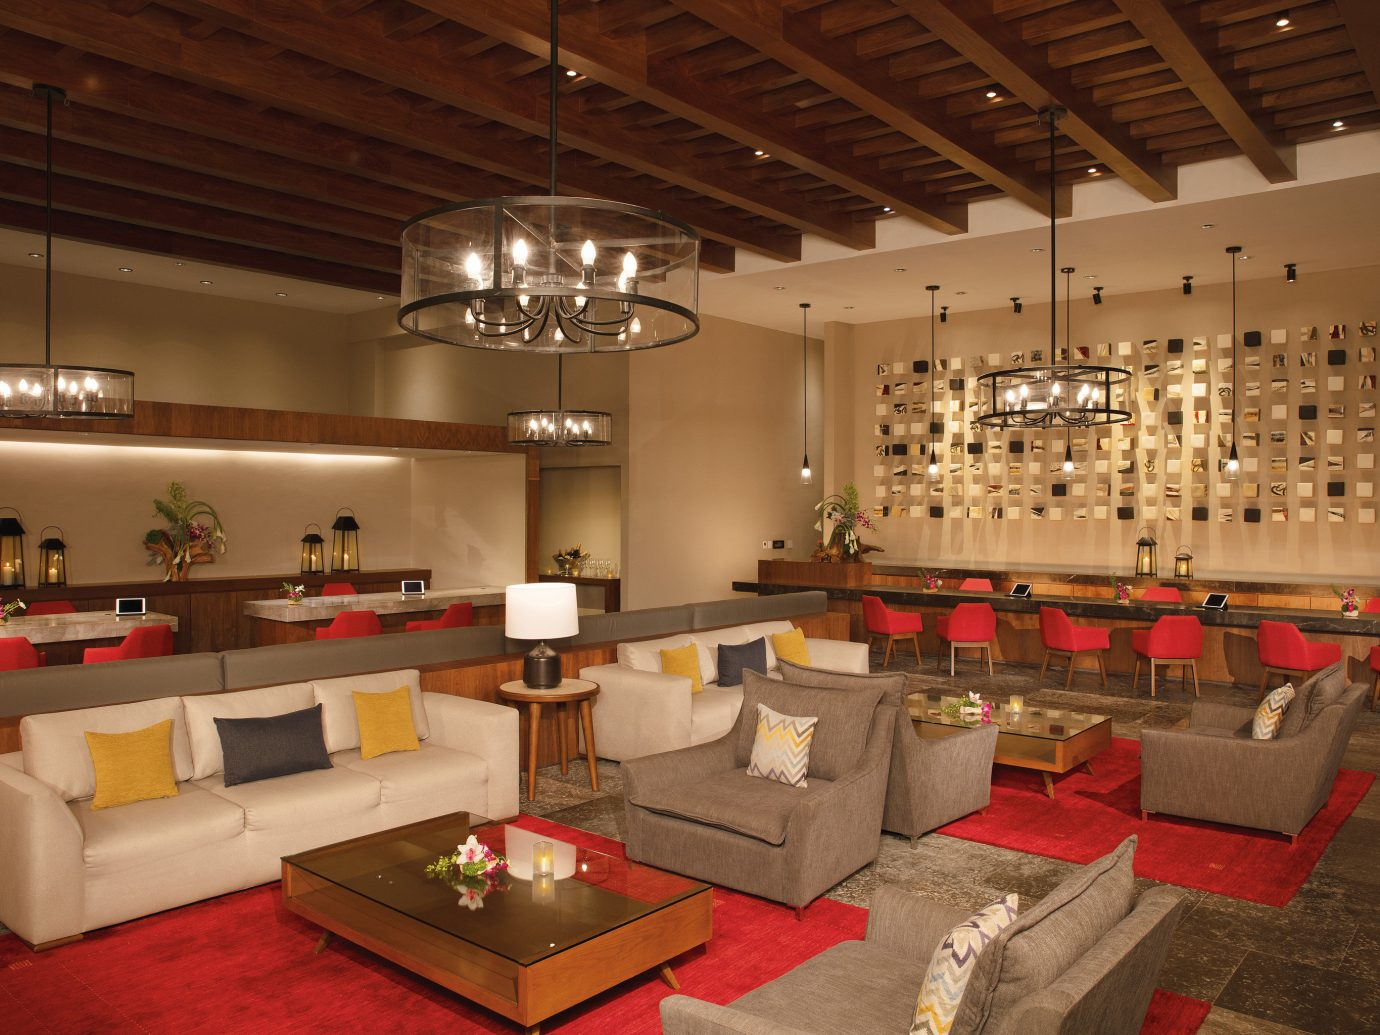 All-Inclusive Resorts Family Travel Hotels indoor wall ceiling floor interior design room Lobby furniture function hall living room table restaurant area several